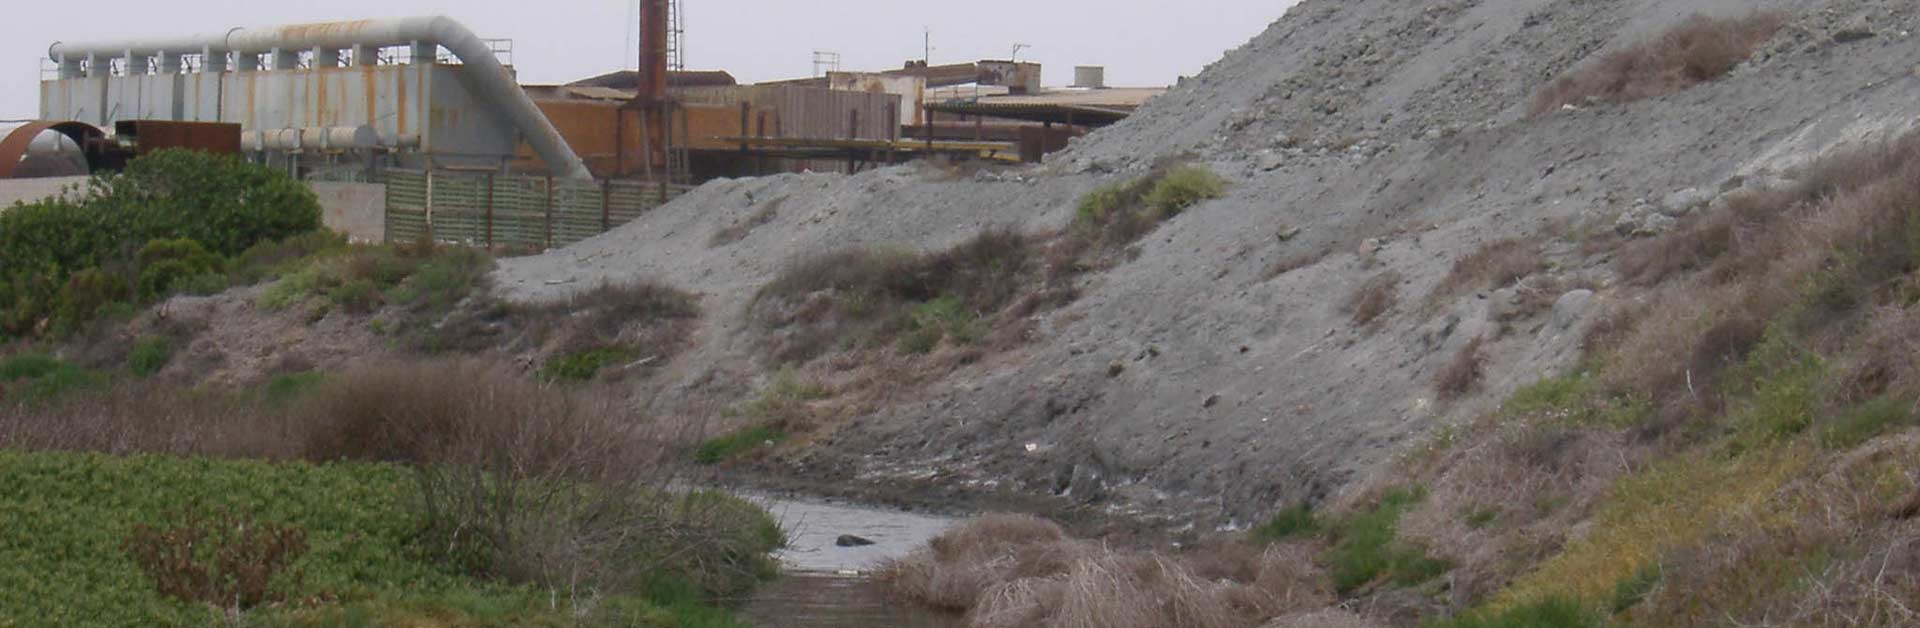 Halaco Engineering's superfund site.